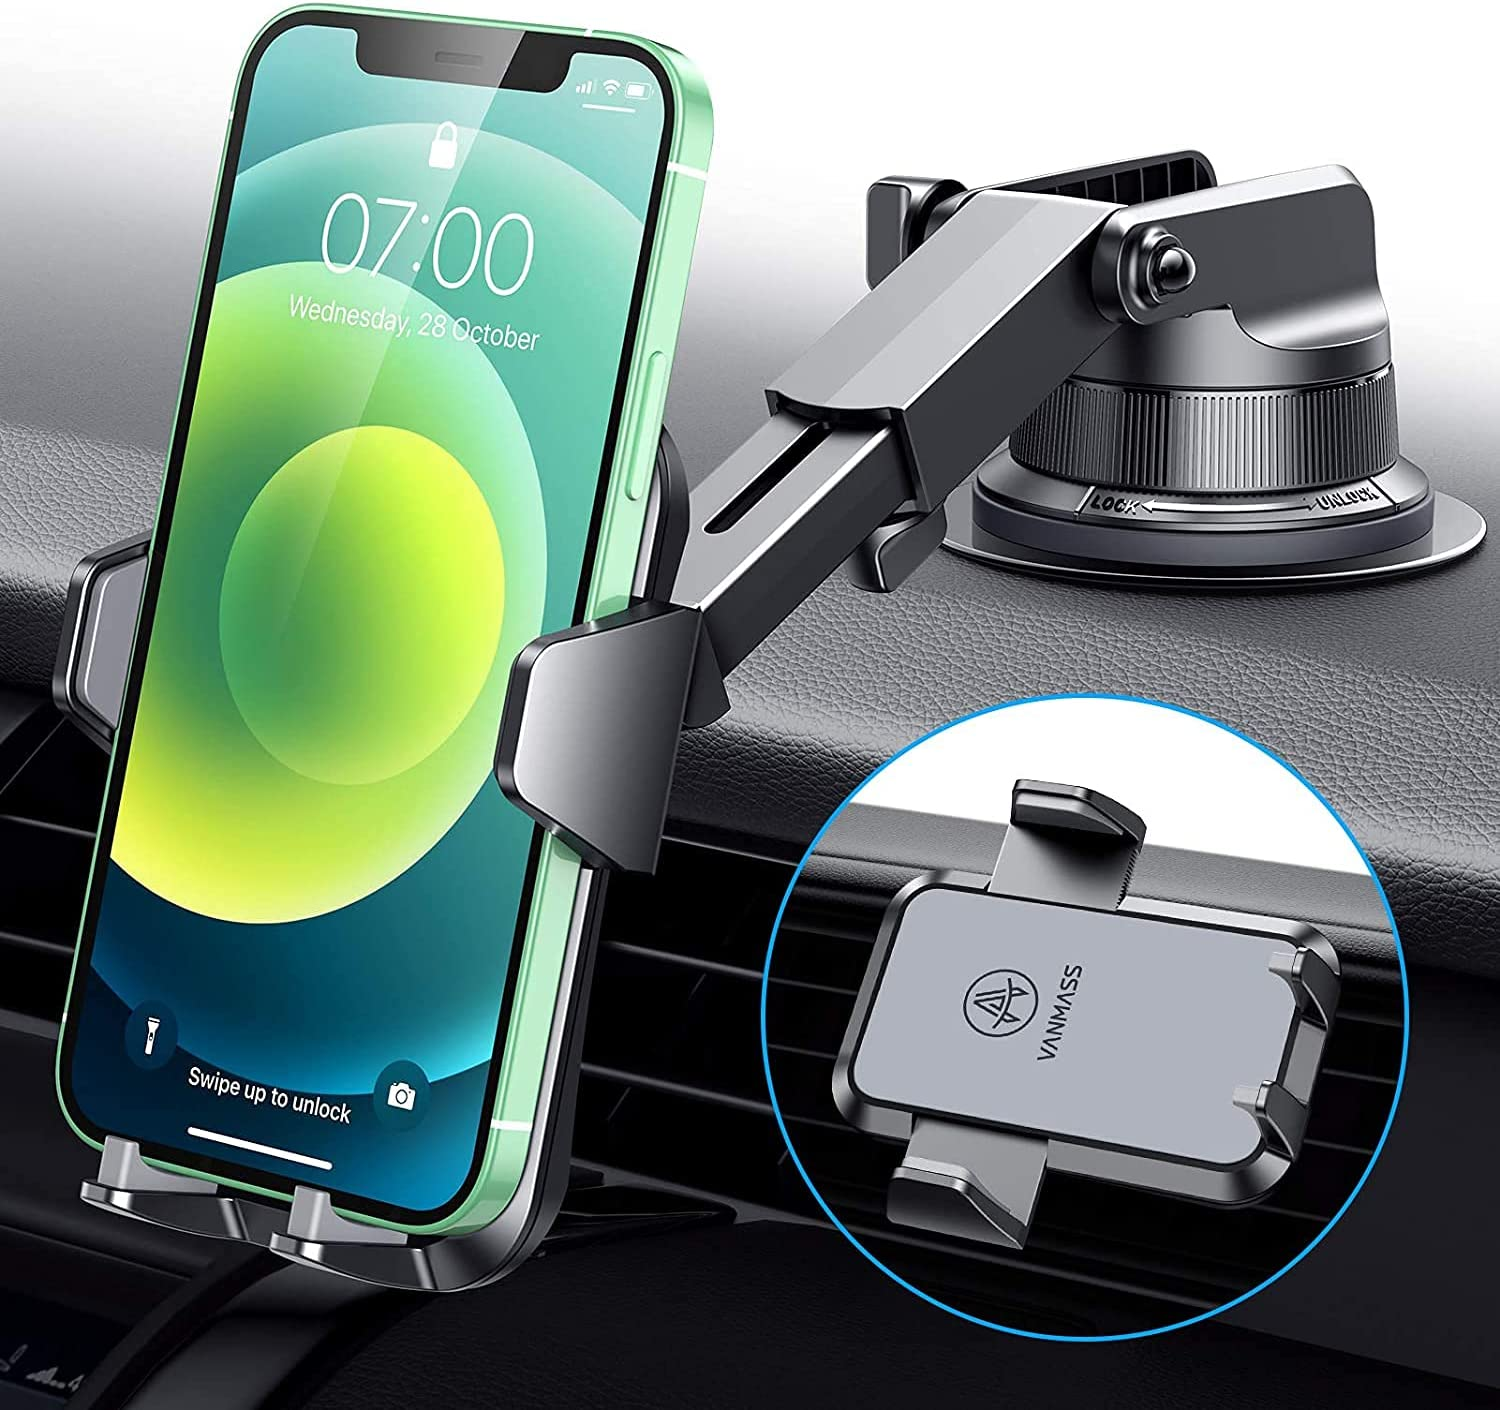 VANMASS Heavy Duty Car Phone Holder Mount【Big & Heavy Phones Friendly】 2021 Cell Phone Holder Car Dashboard Windshield Vent Compatible with iPhone 12 11 Pro SE Xs Max X, Galaxy s20 Note 10 9